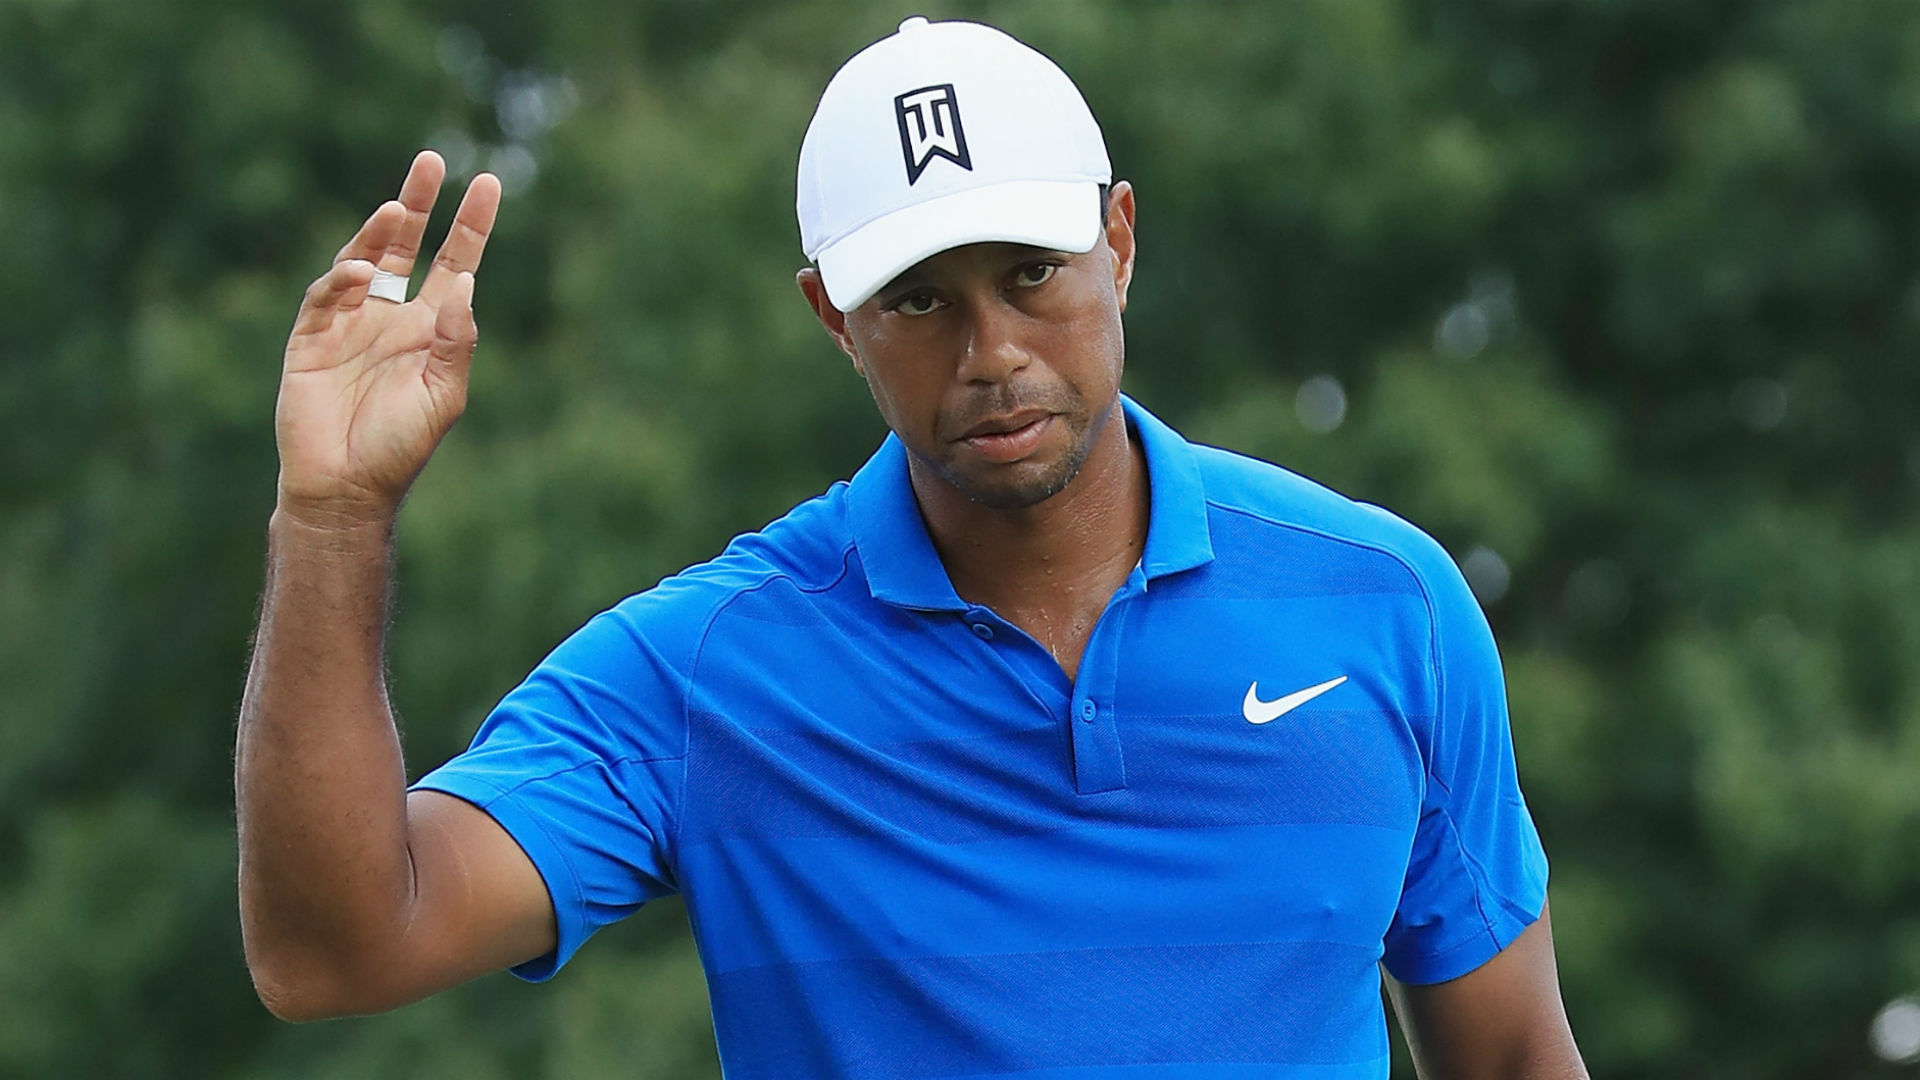 Tiger Woods Wins PGA Tour Event for First Time in 5 Years